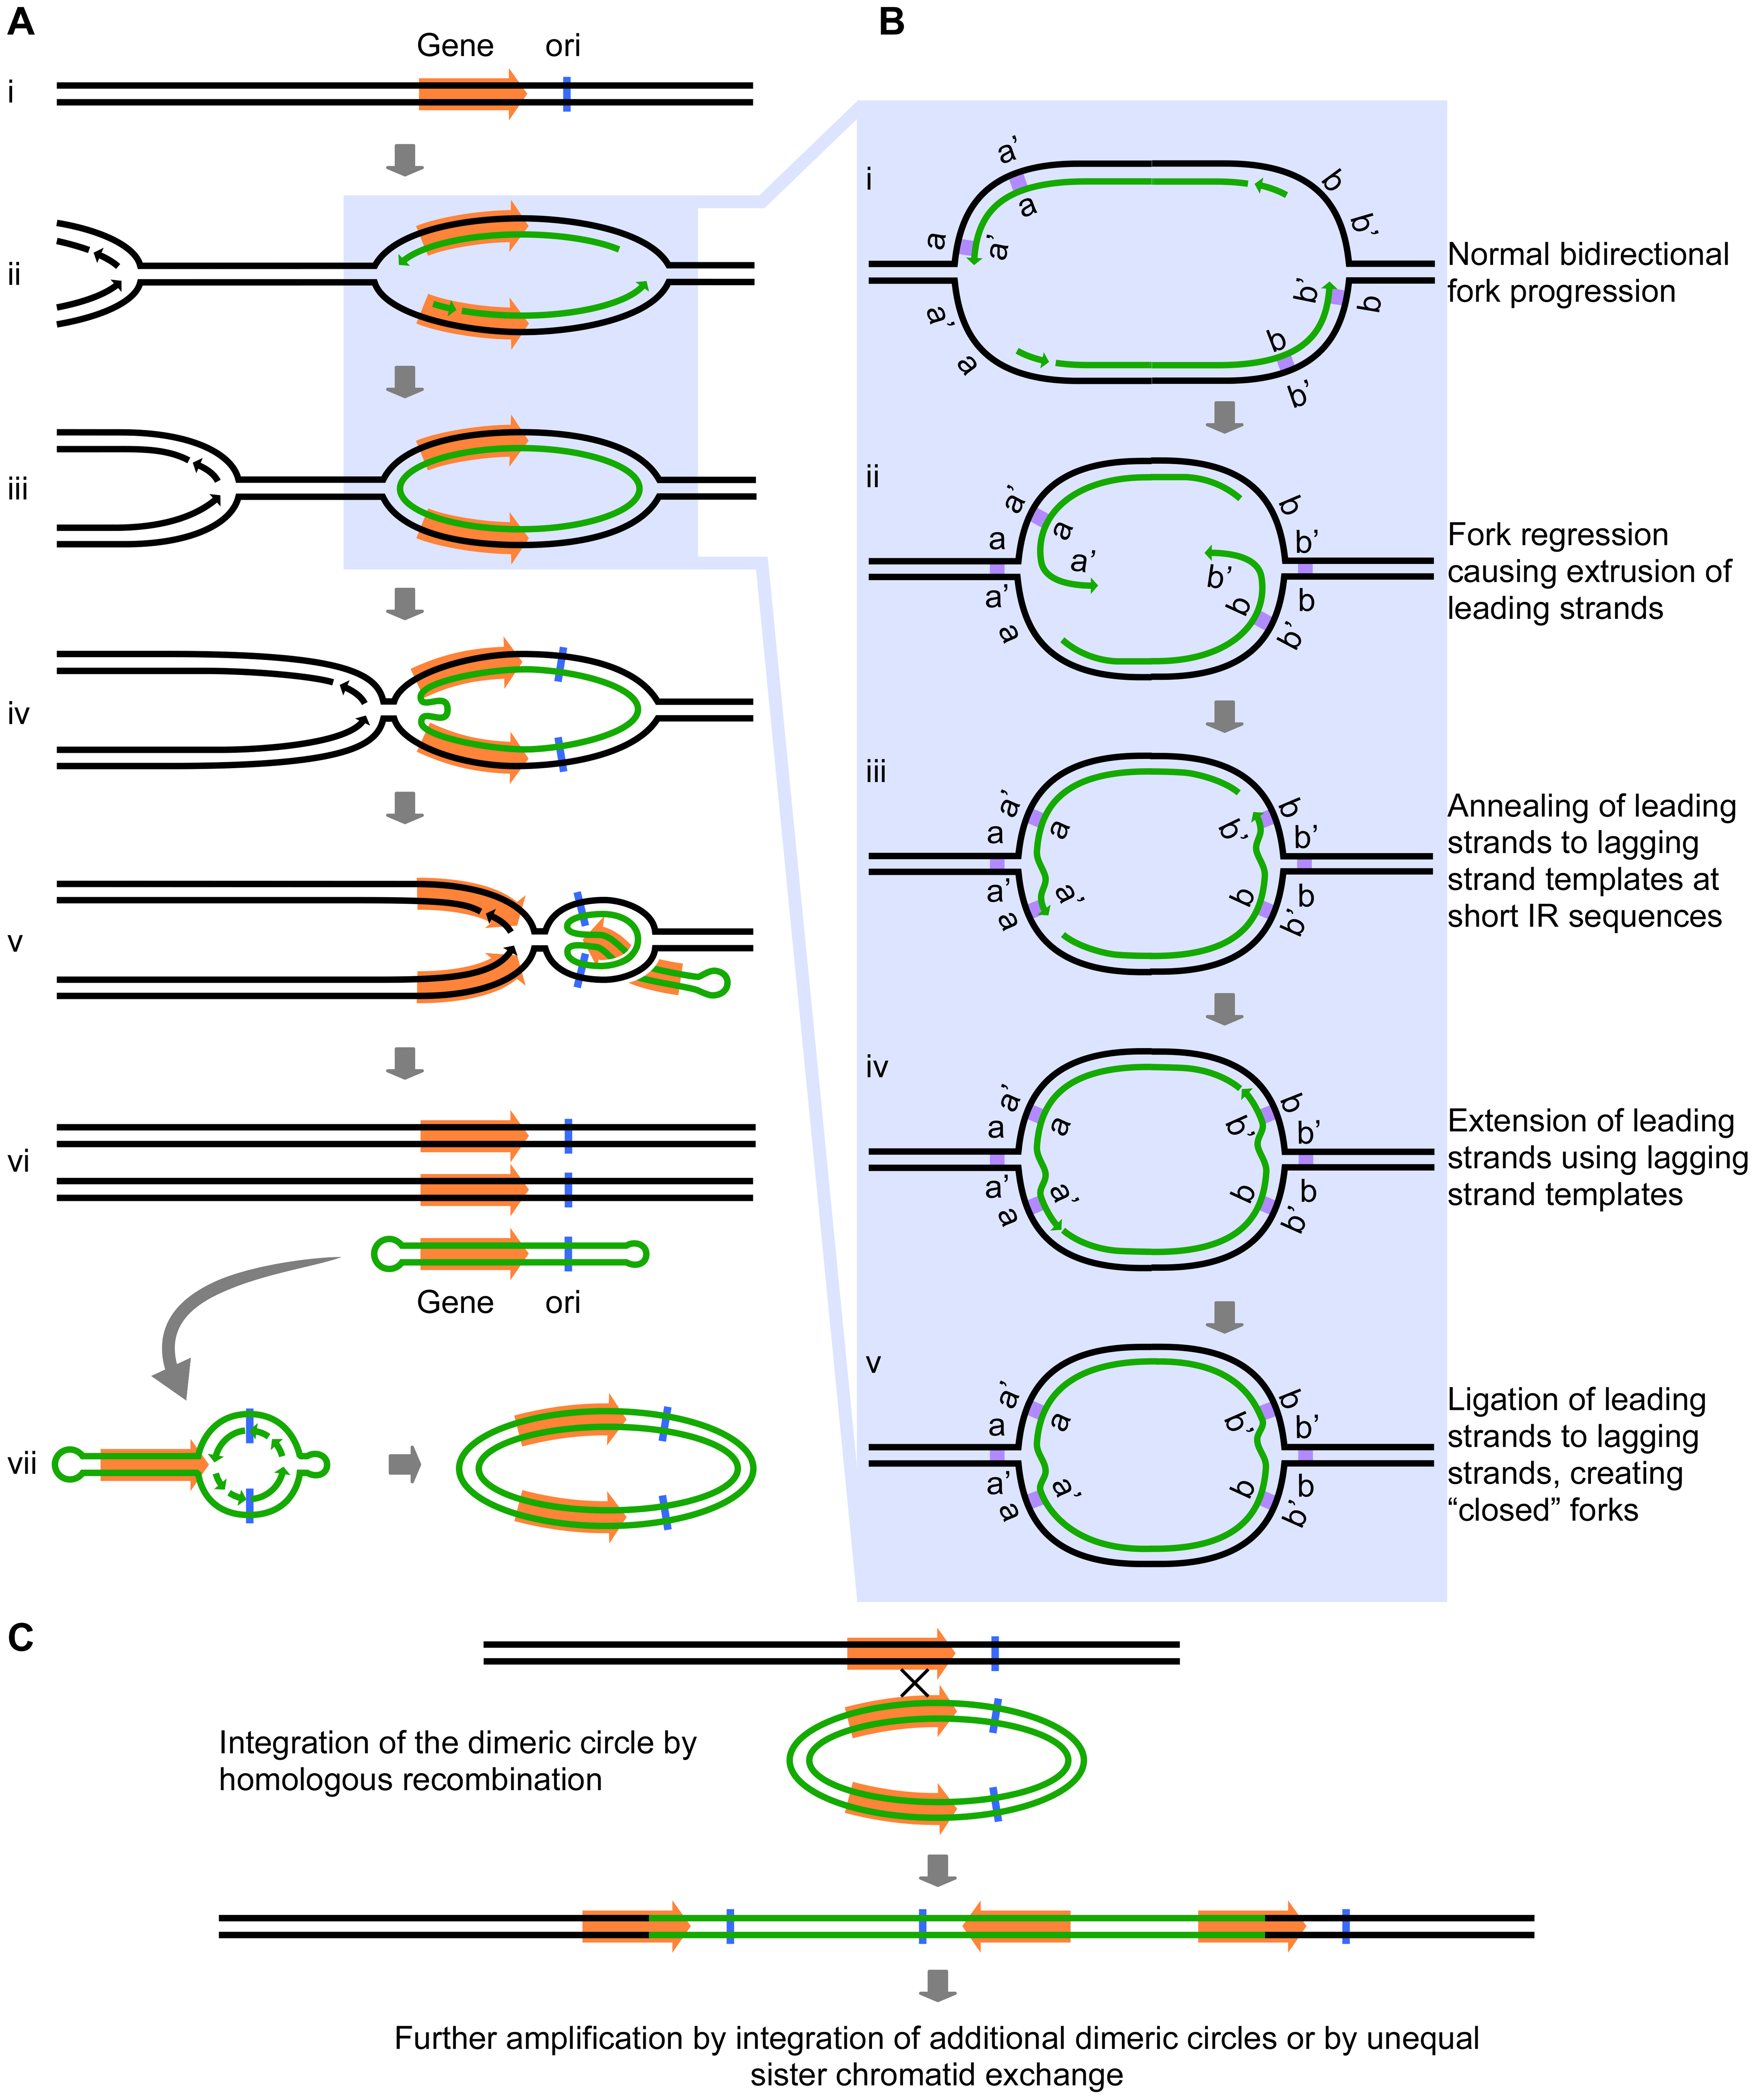 The Origin-Dependent Inverted-Repeat (ODIRA) model for Amplification of chromosomal segments.